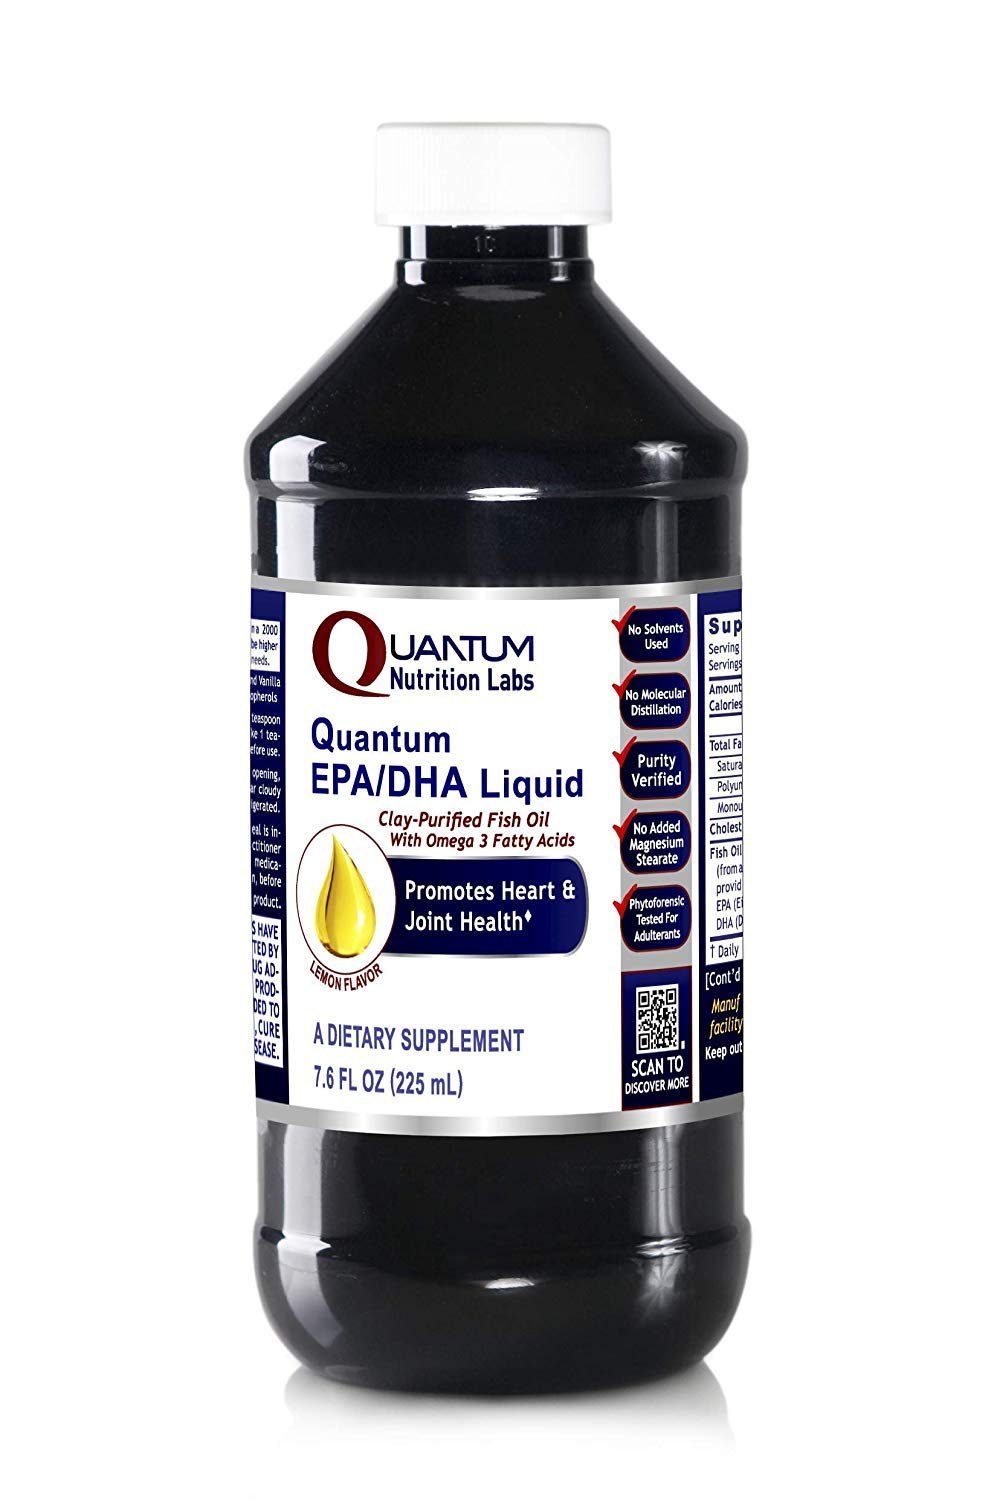 Quantum EPA/DHA, 24 fl oz (3 Bottles) - Quantum Fish Oil Concentrate for Heart and Joint Health, Lemon Flavor by Quantum Nutrition Labs